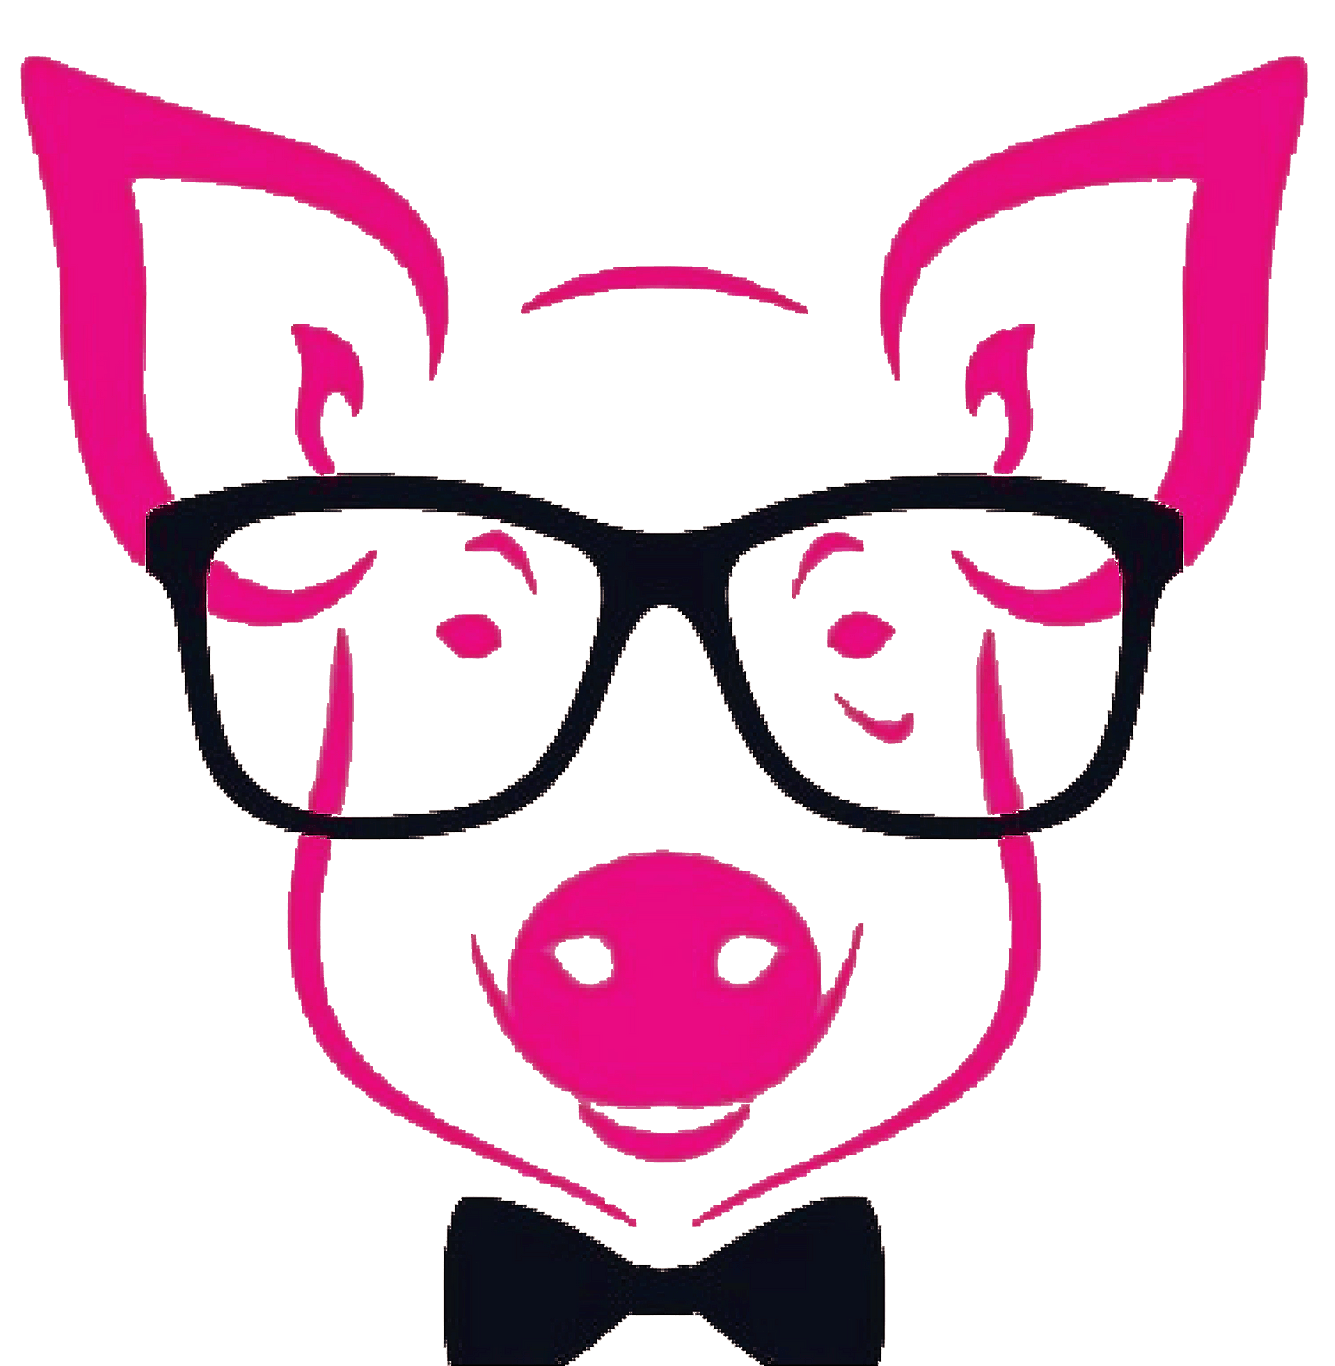 Pig in bow tie